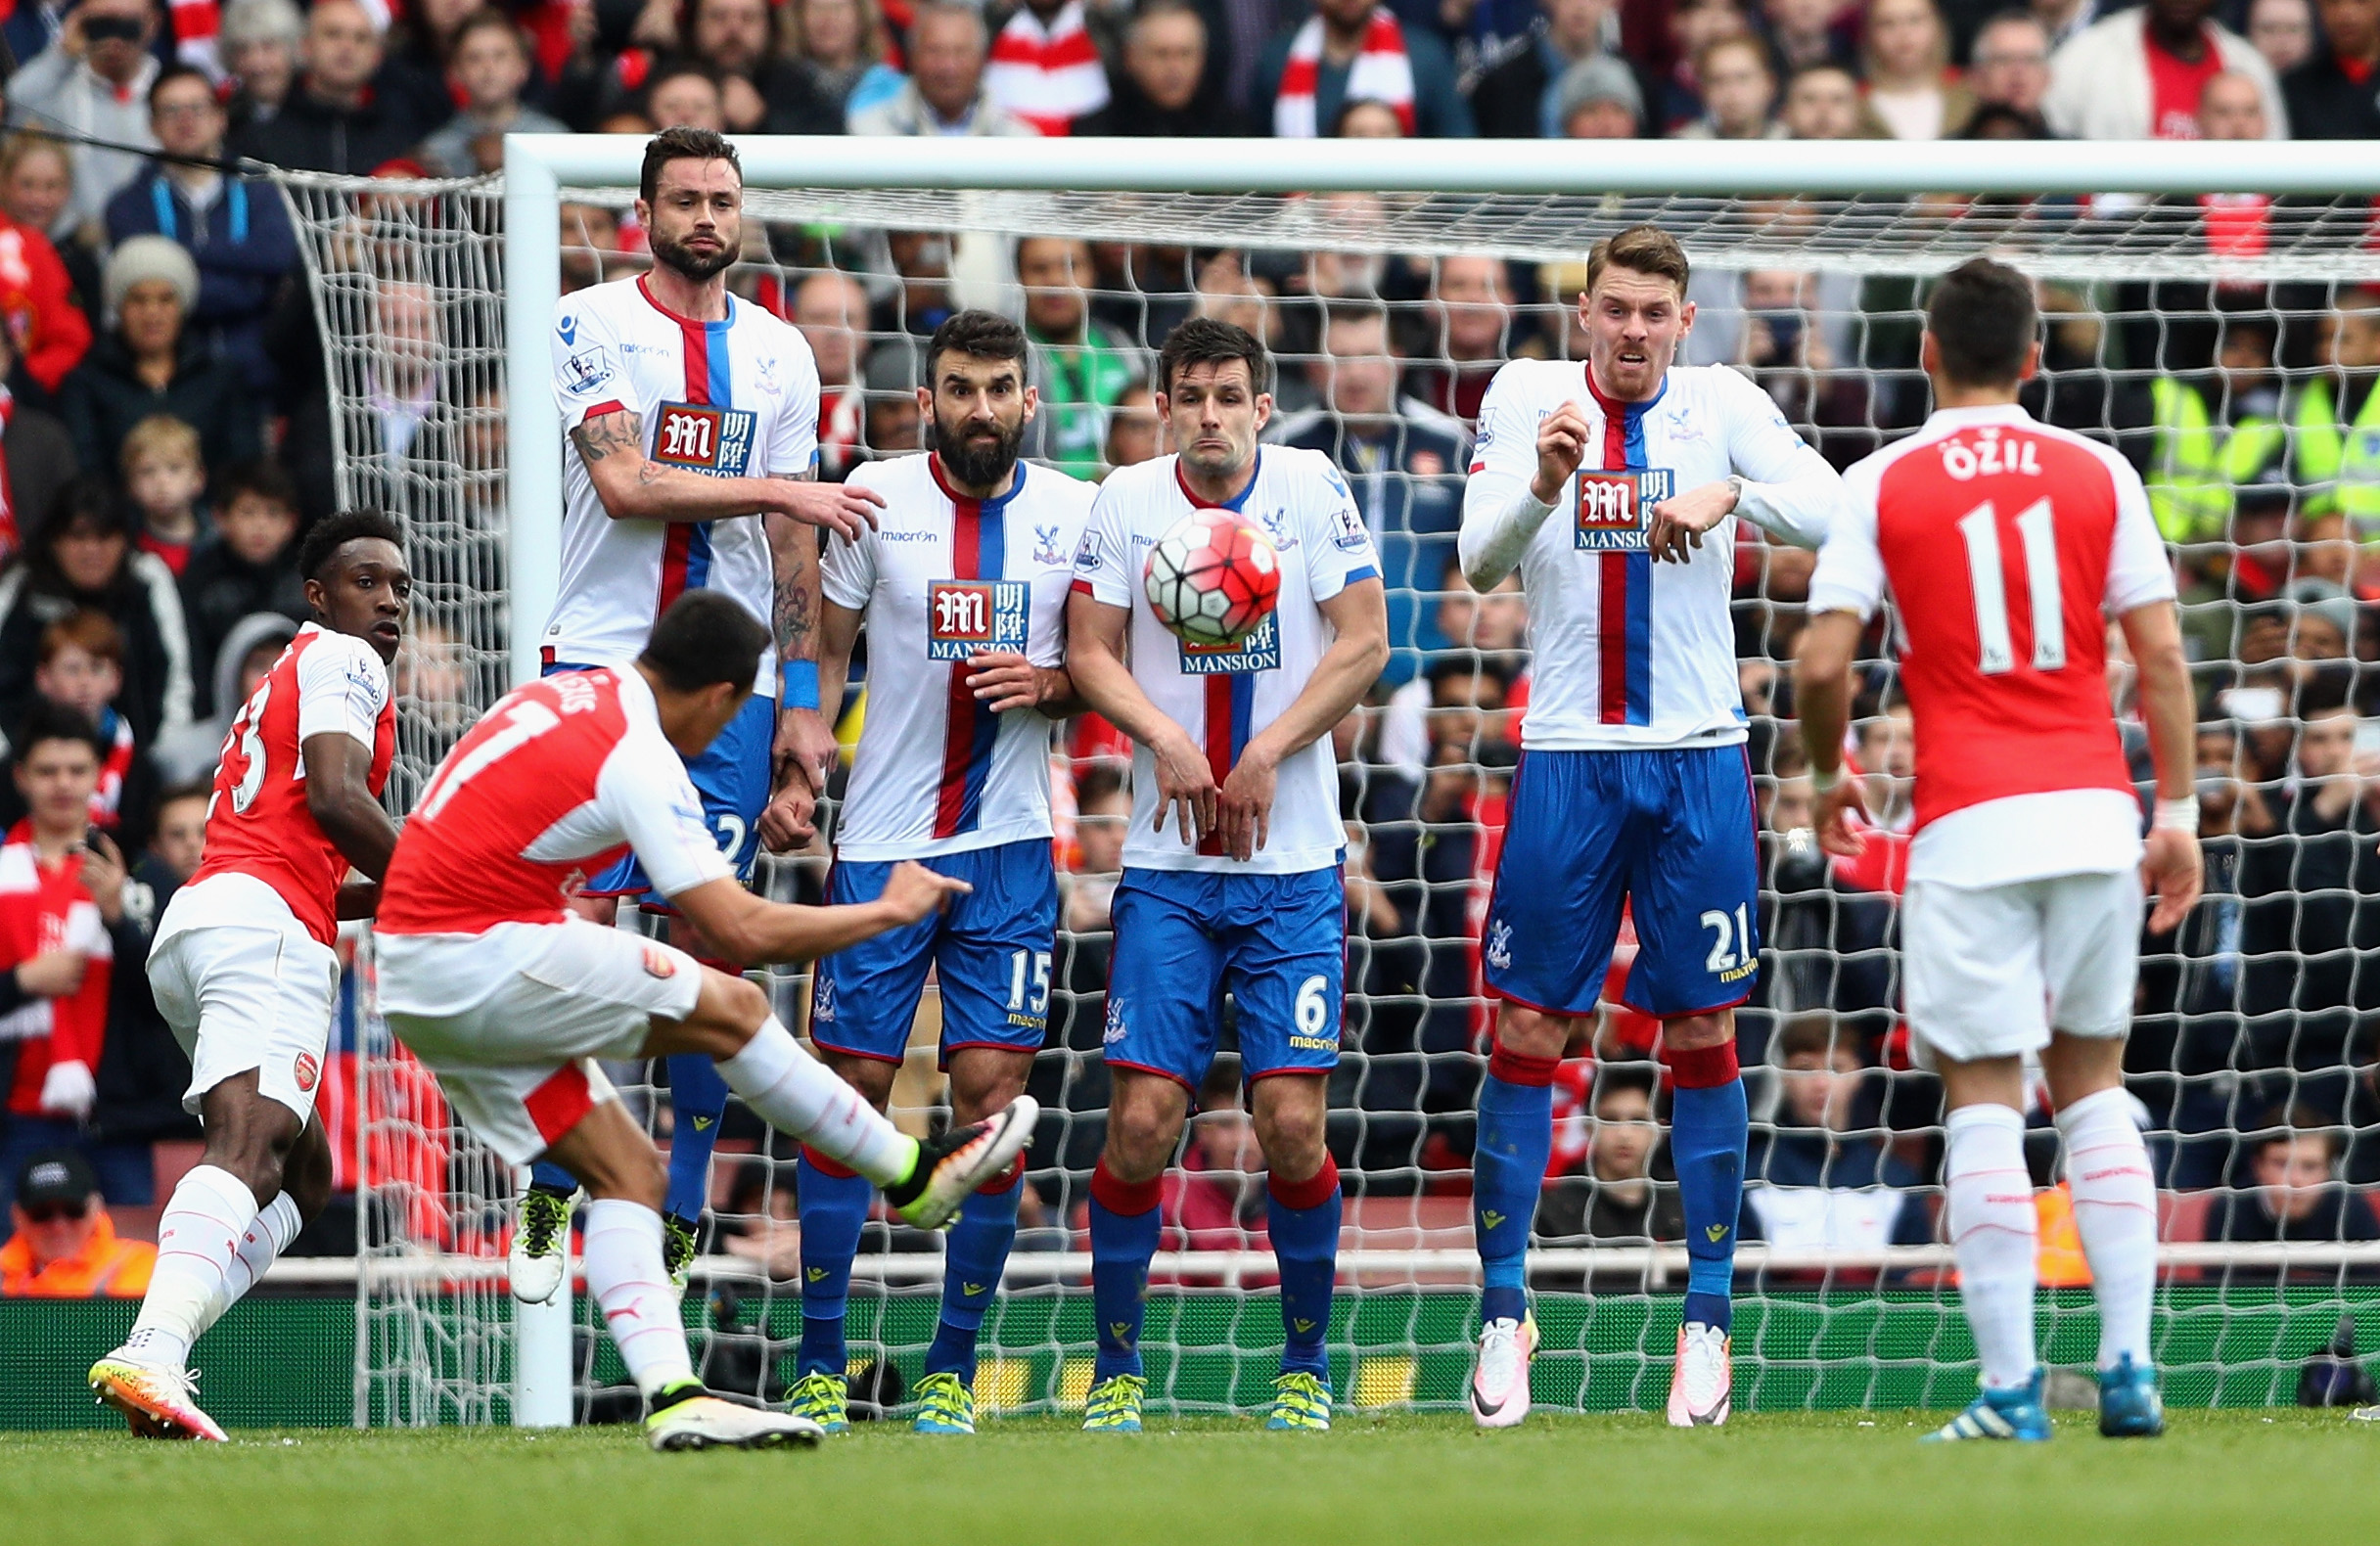 INGHILTERRA|L'Arsenal cade ancora\nDominio Crystal Palace\nWenger rischia l'Europa